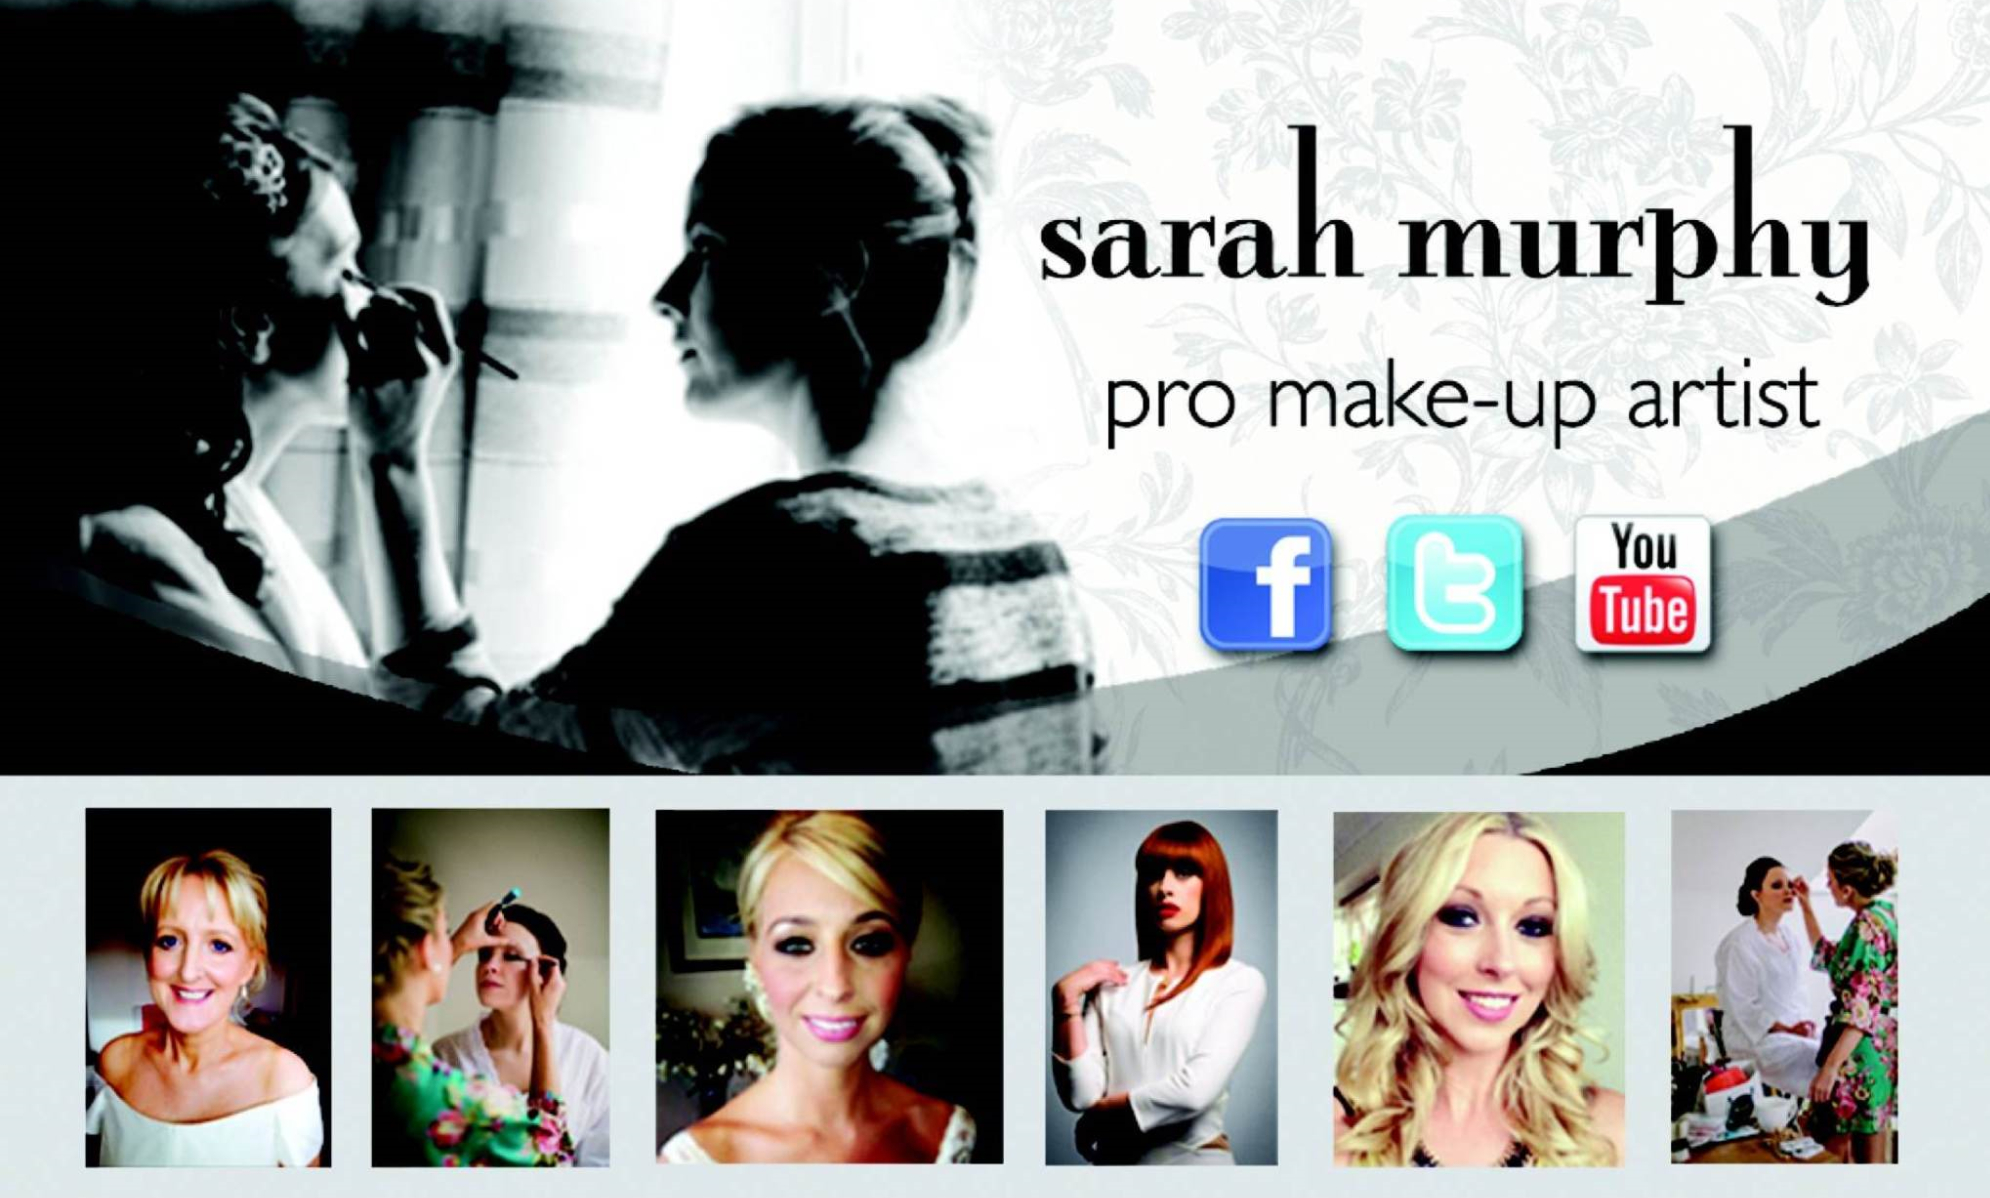 SM Pro Make-Up